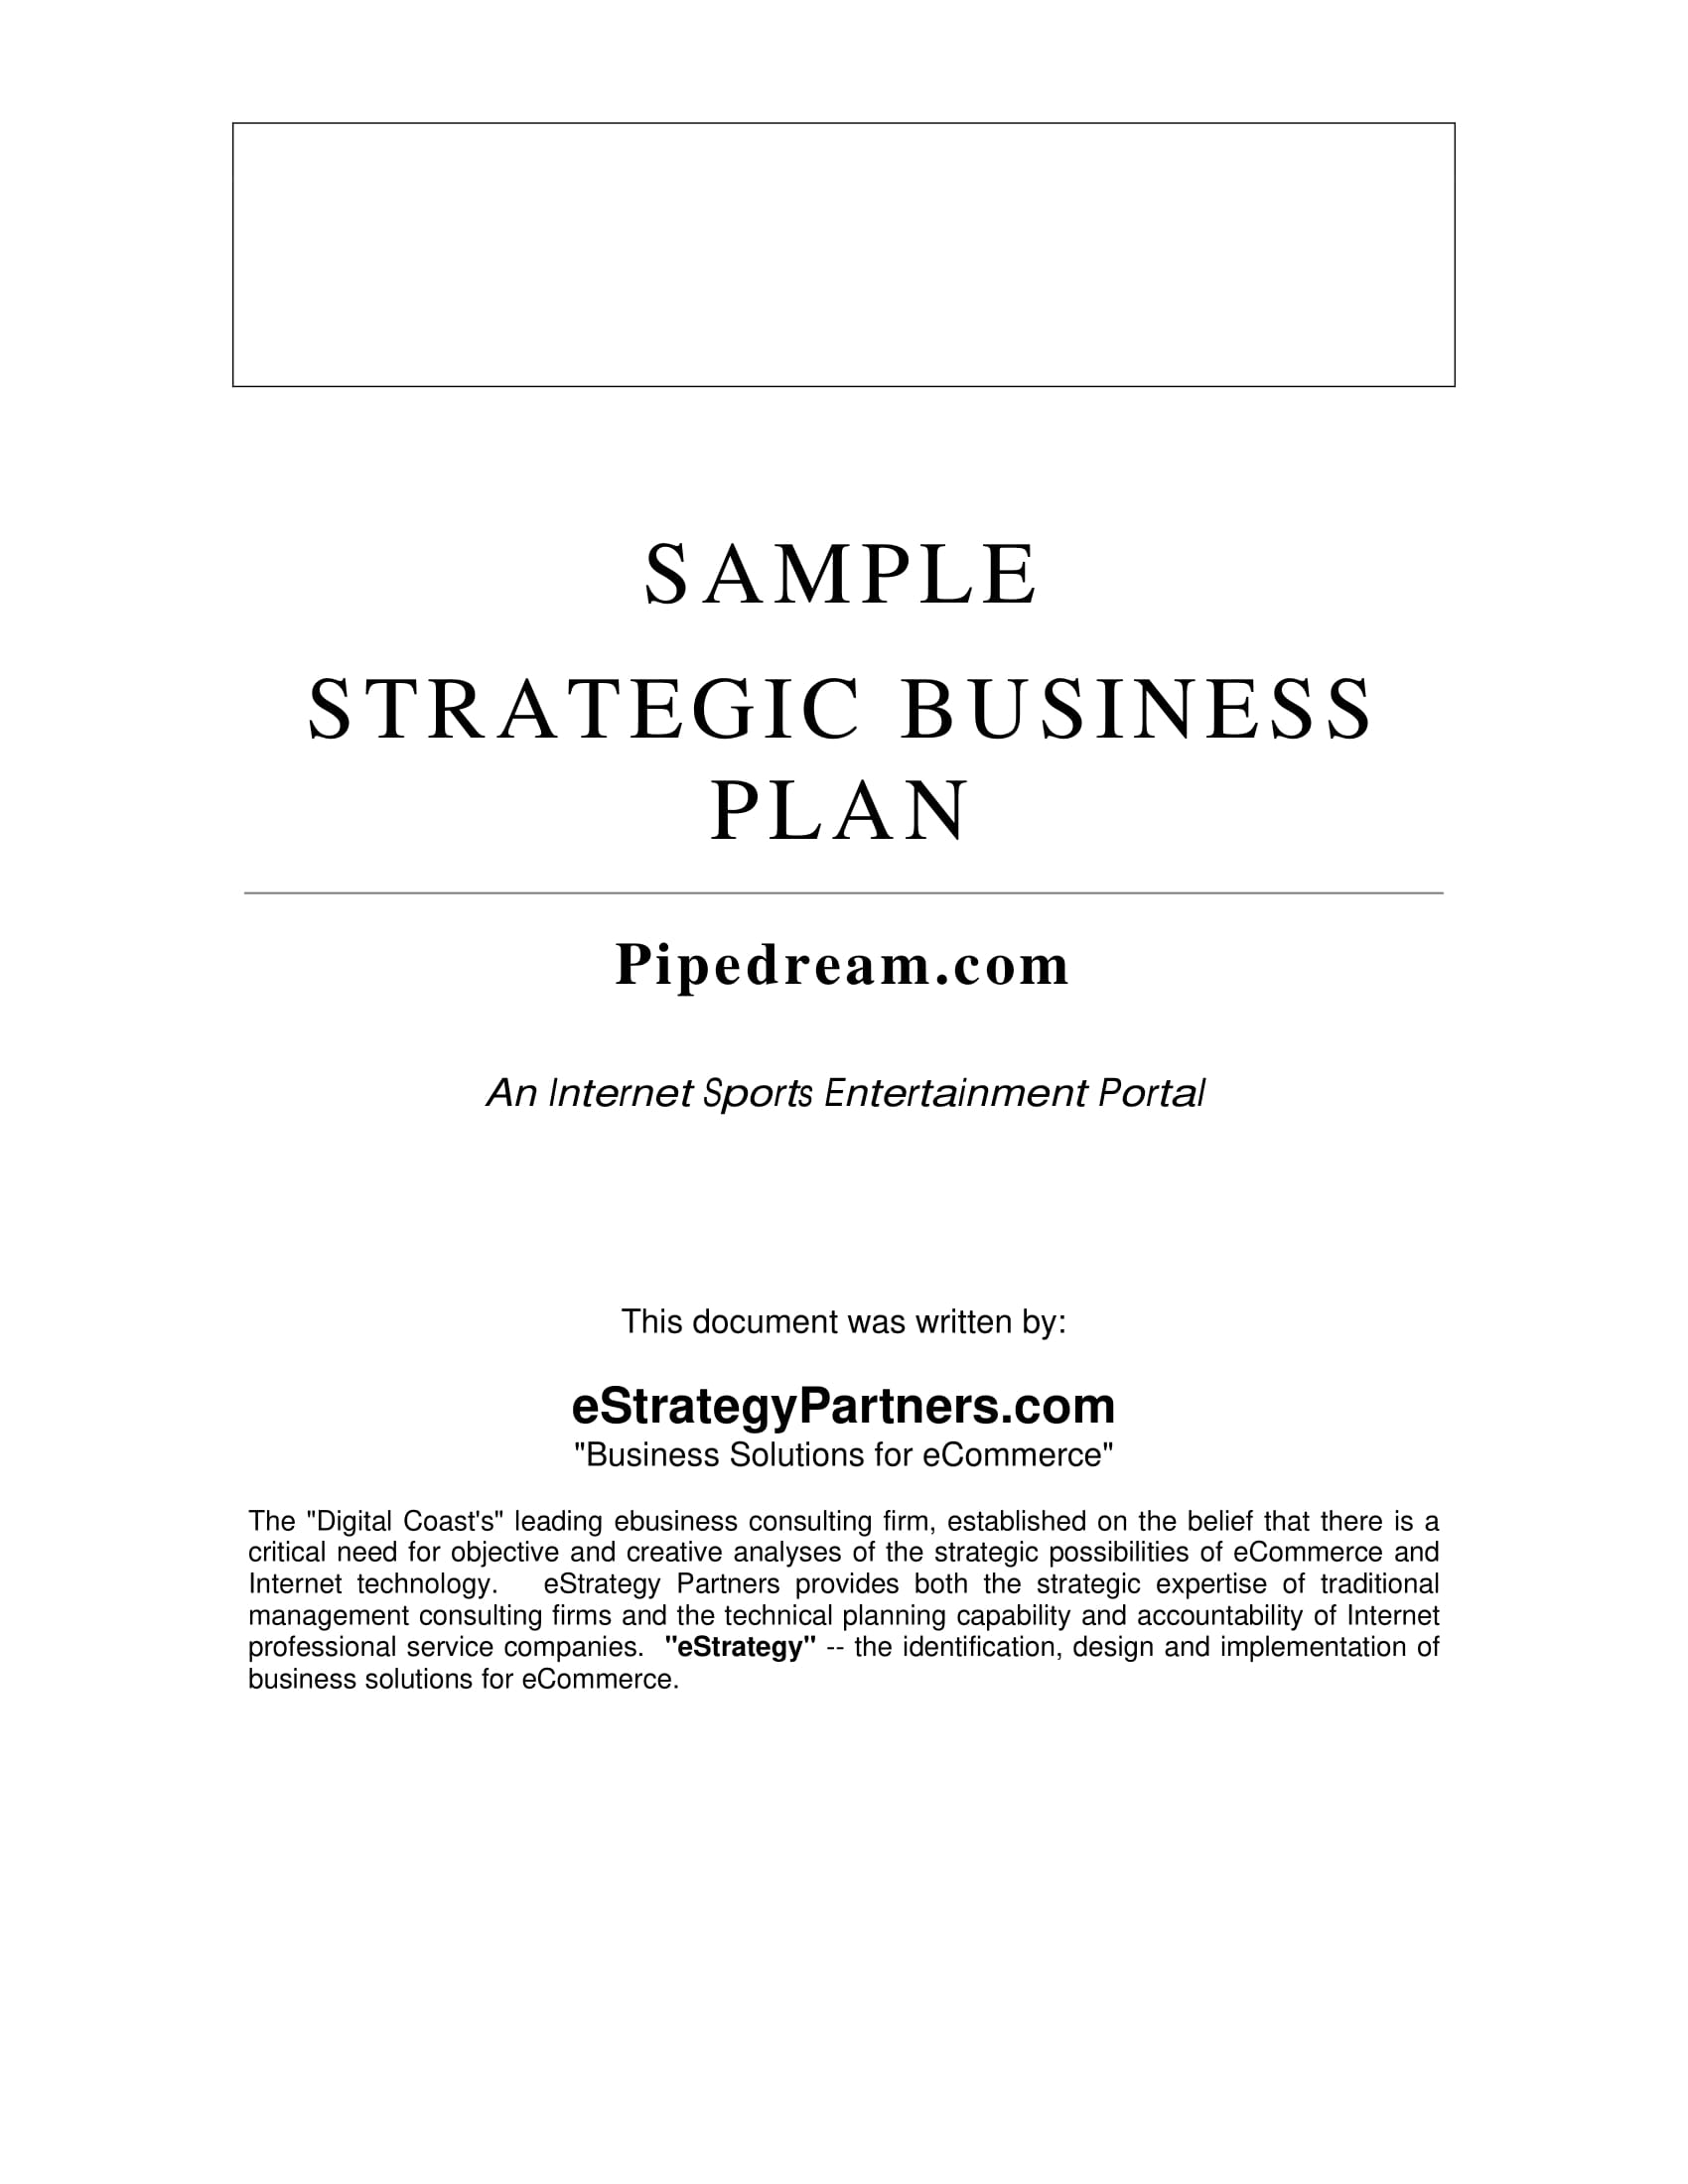 10 business development strategy plan examples pdf word strategic business plan for business development example 01 flashek Gallery